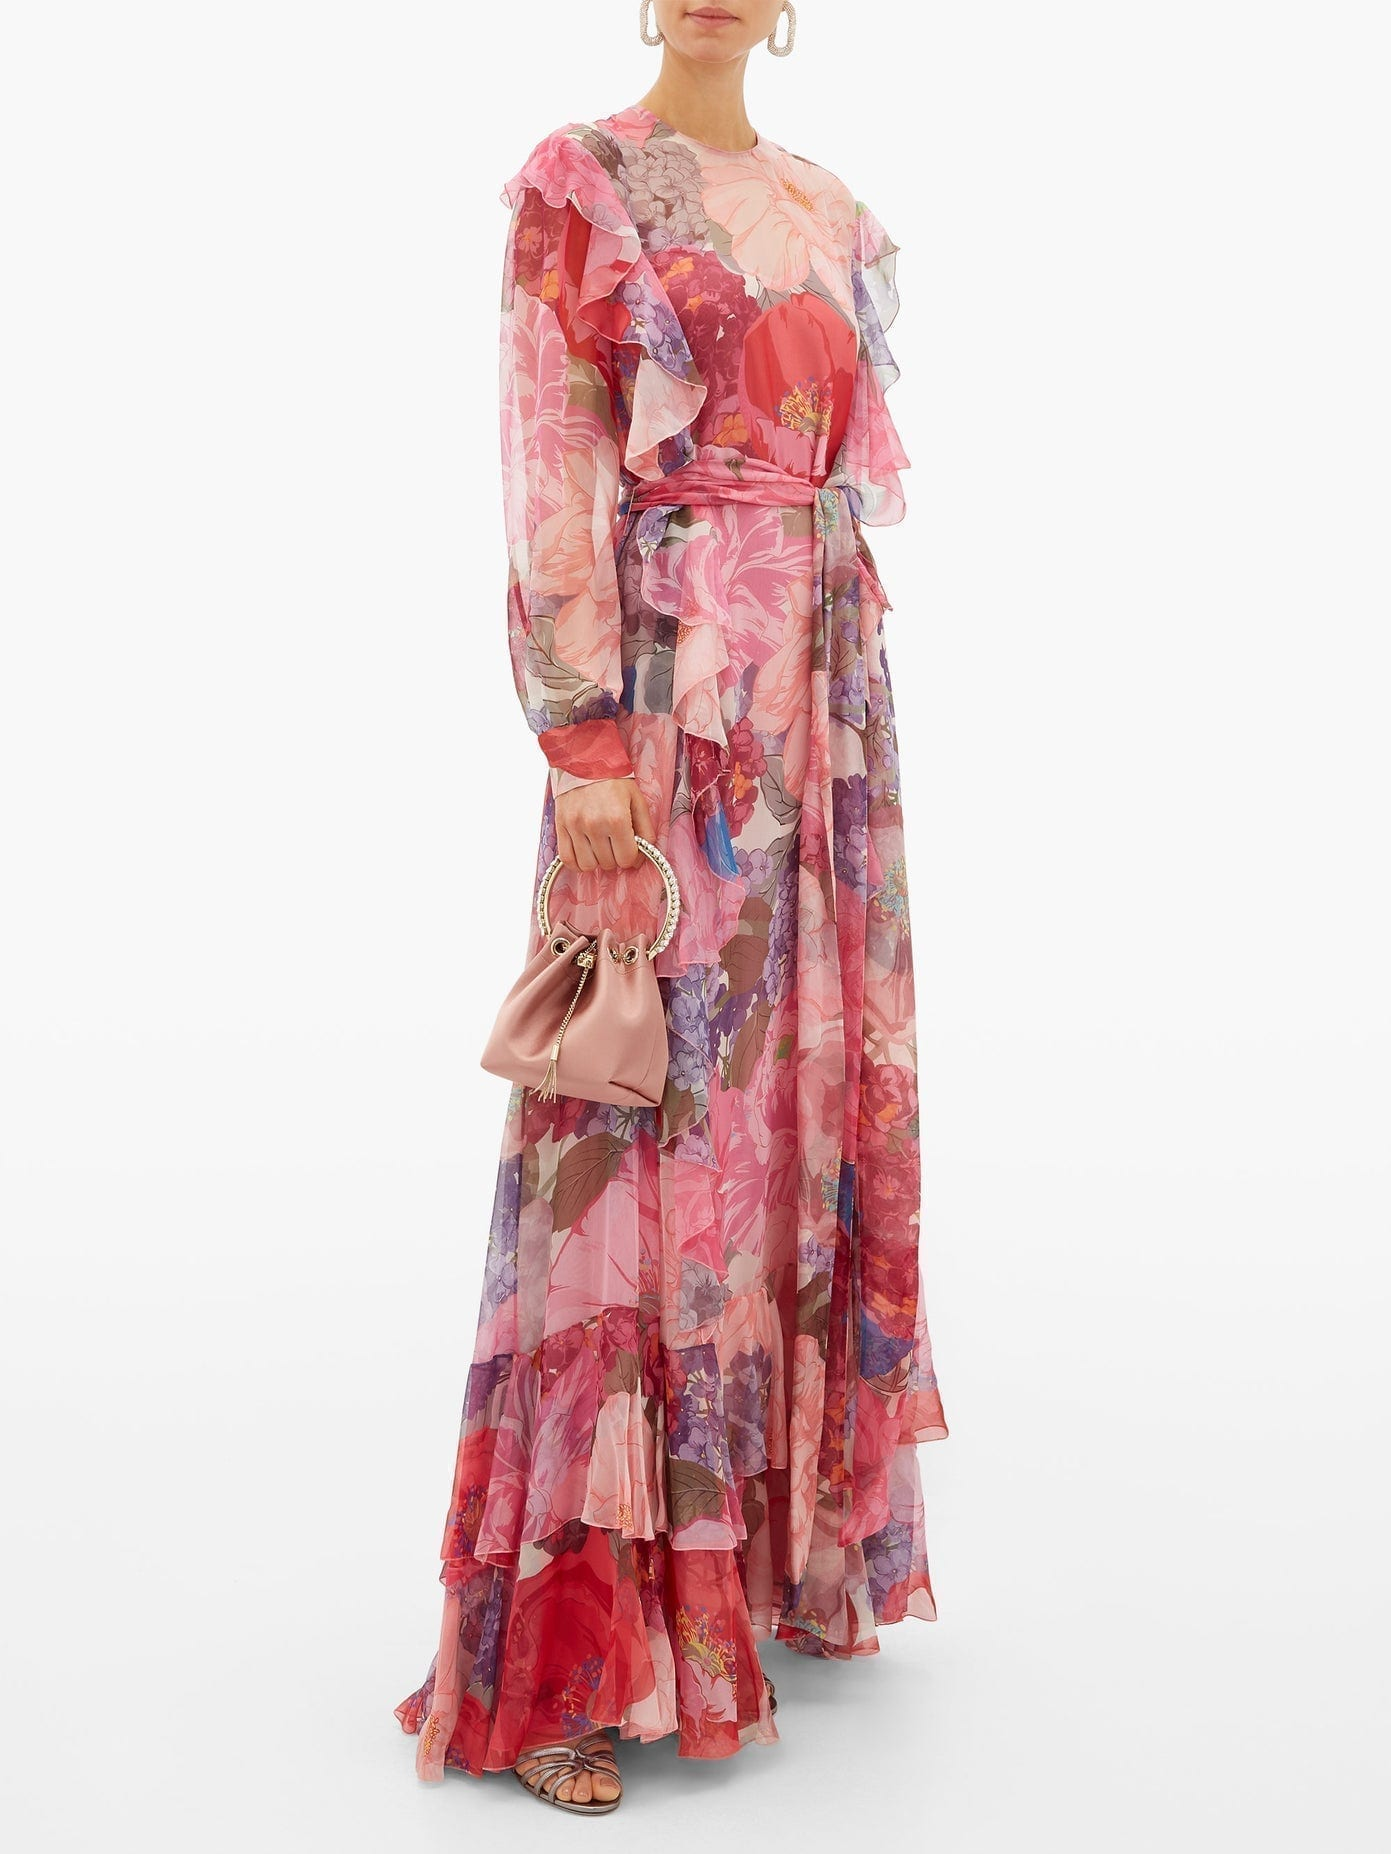 VALENTINO Floral-print Ruffled Belted Chiffon Gown